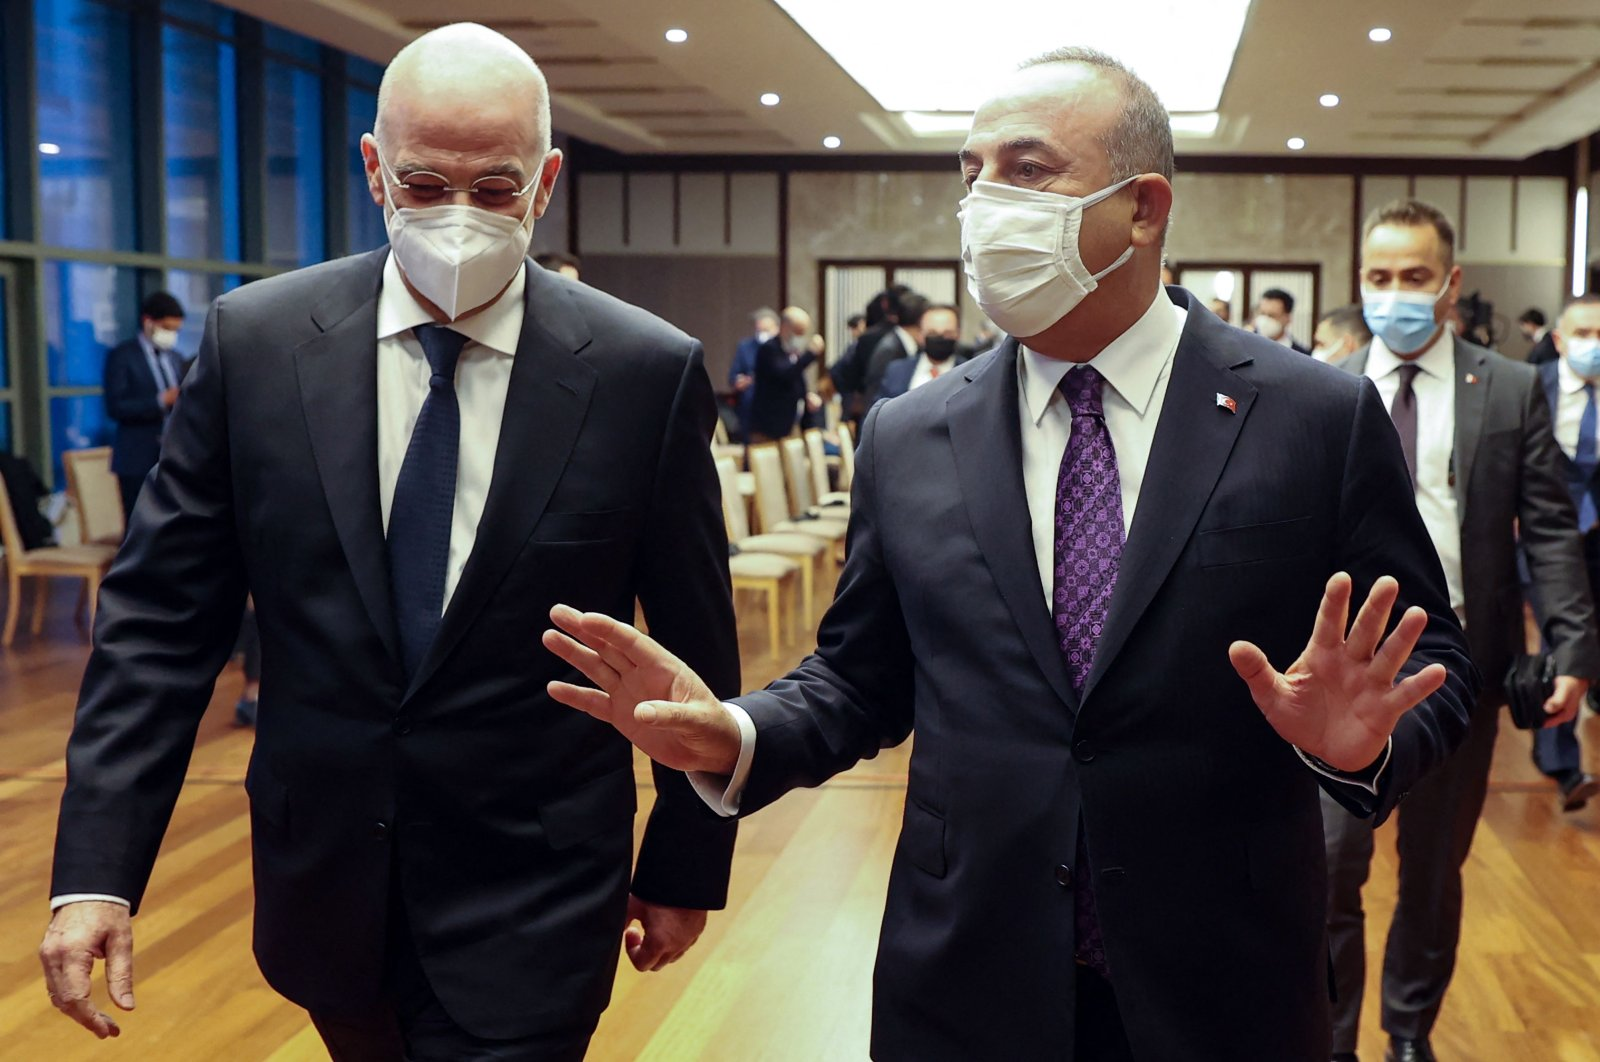 Greek Foreign Minister Nikos Dendias (L) and Turkish Foreign Minister Mevlut Cavusoglu arrive to hold a joint press conference following their meeting in Ankara, Turkey, April 15, 2021. (AFP Photo)